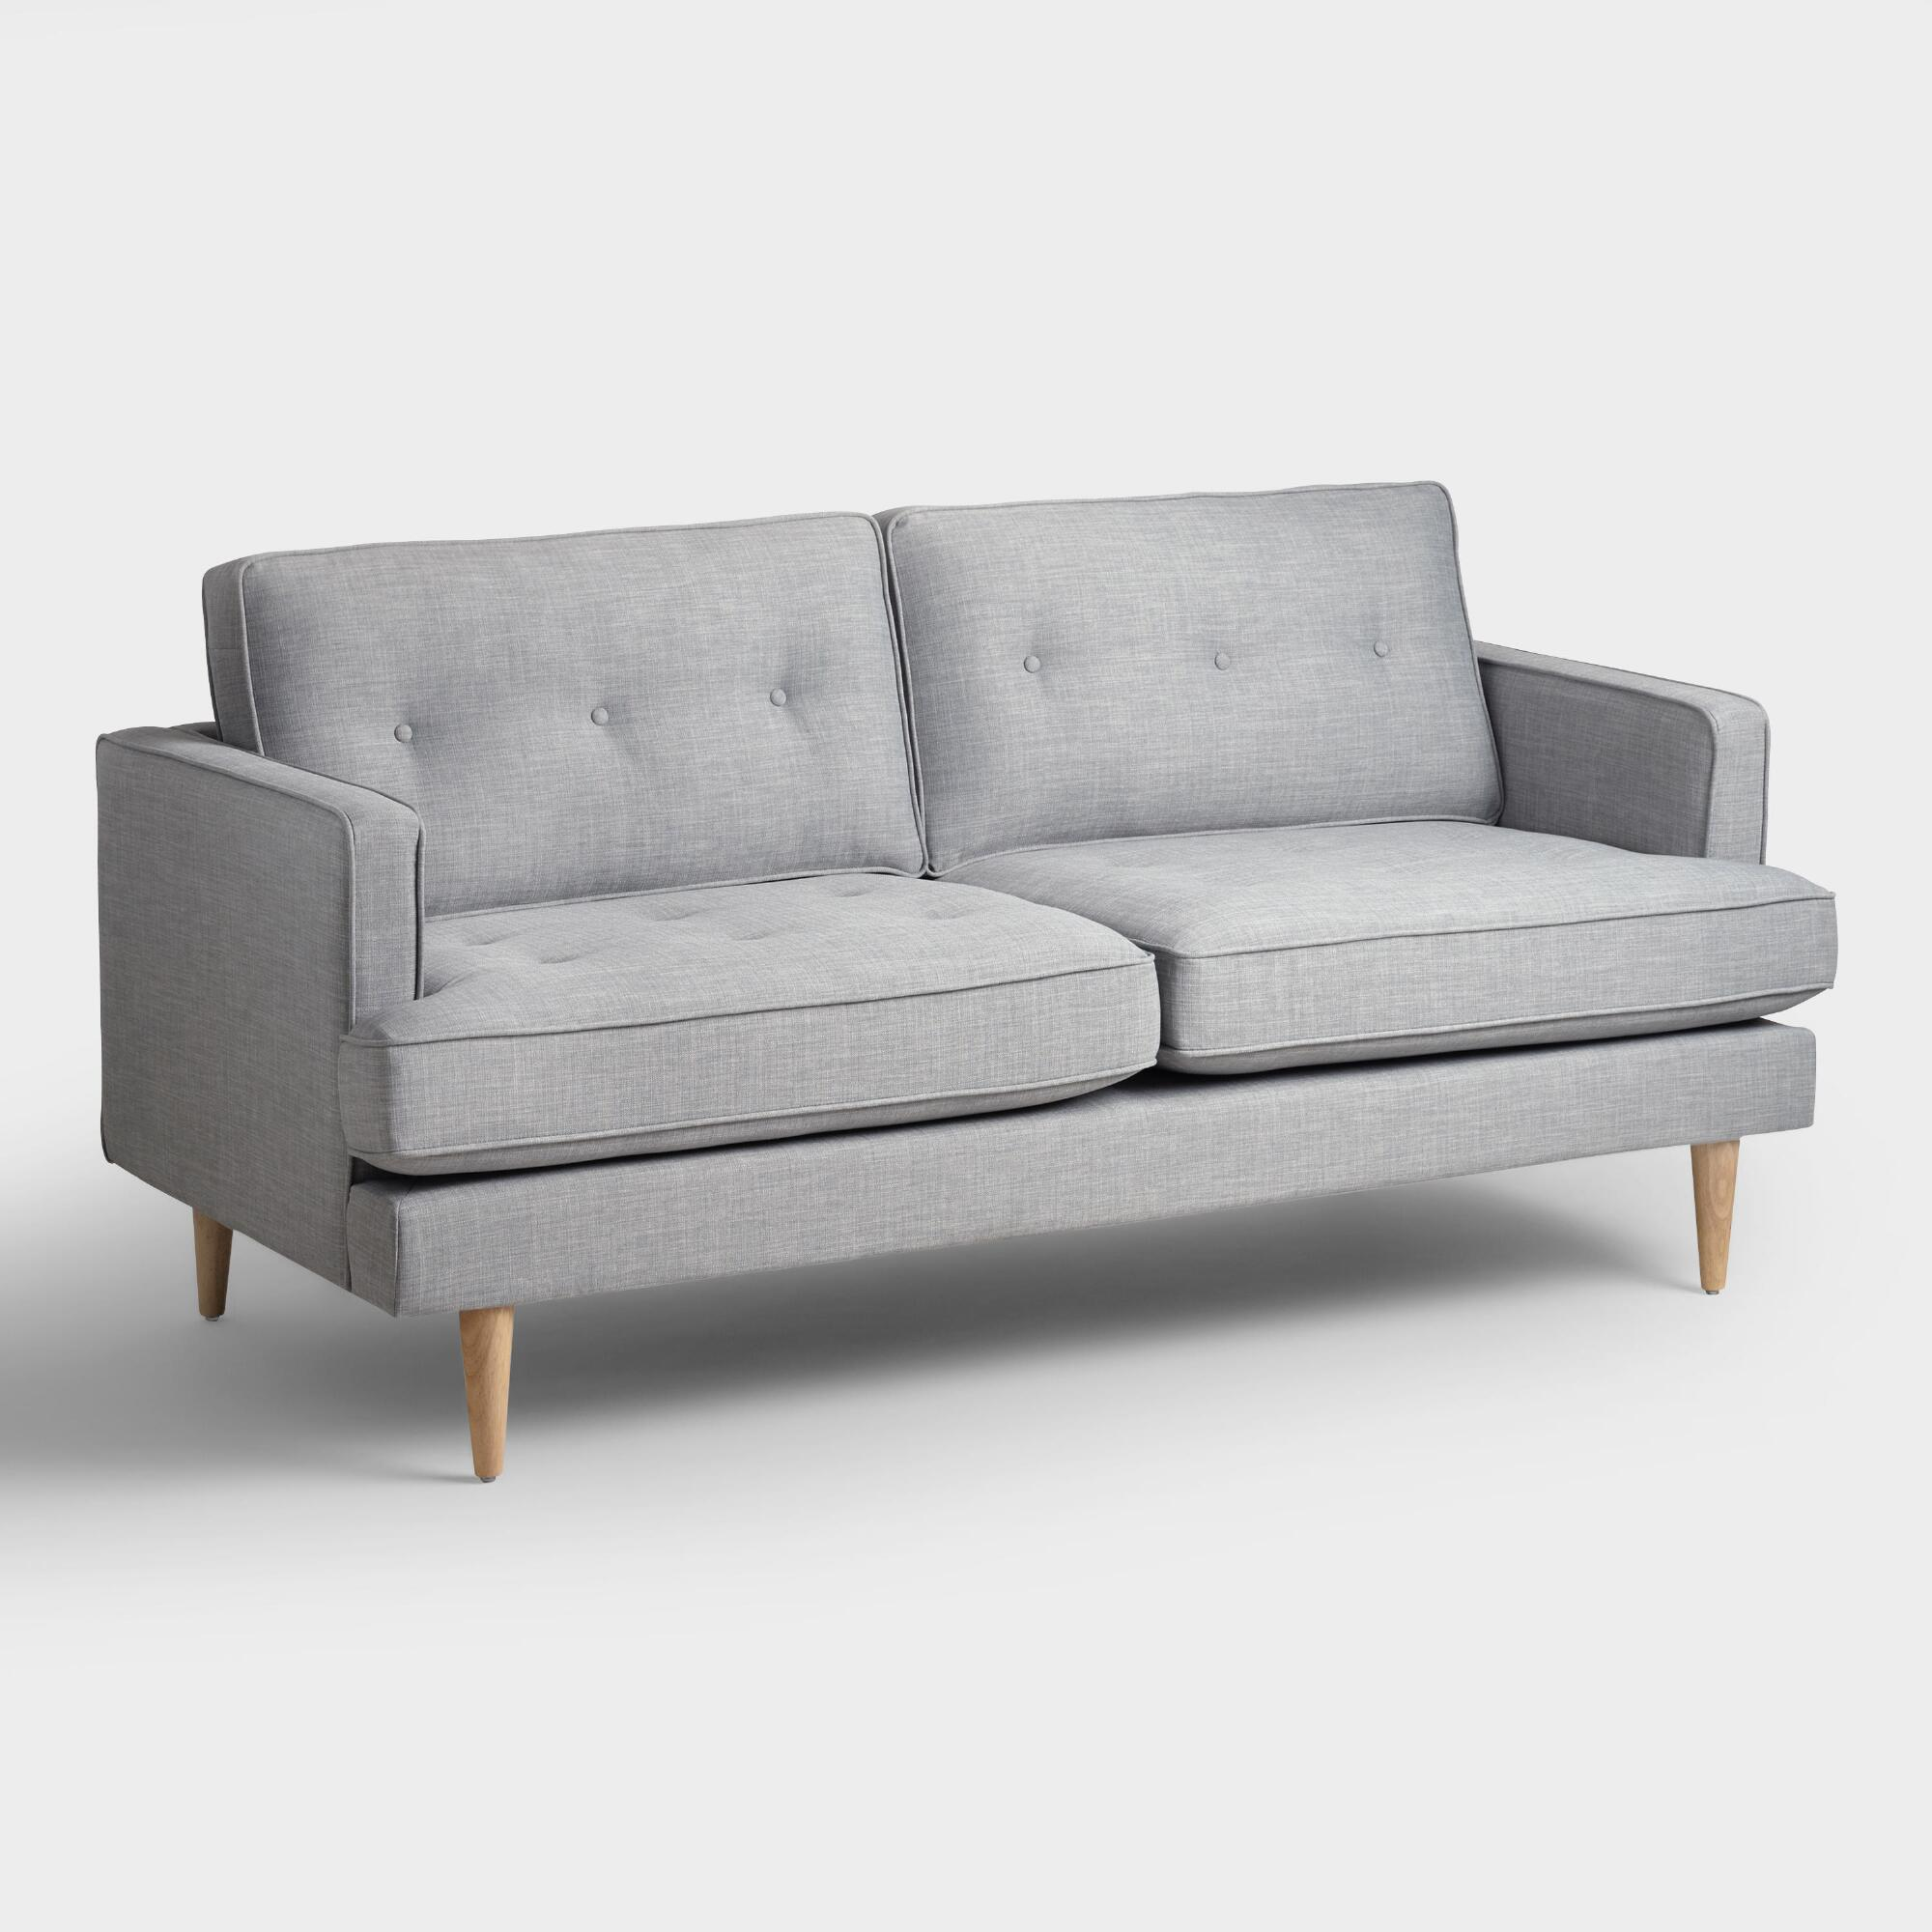 Dove gray woven apel sofa world market Couches and loveseats